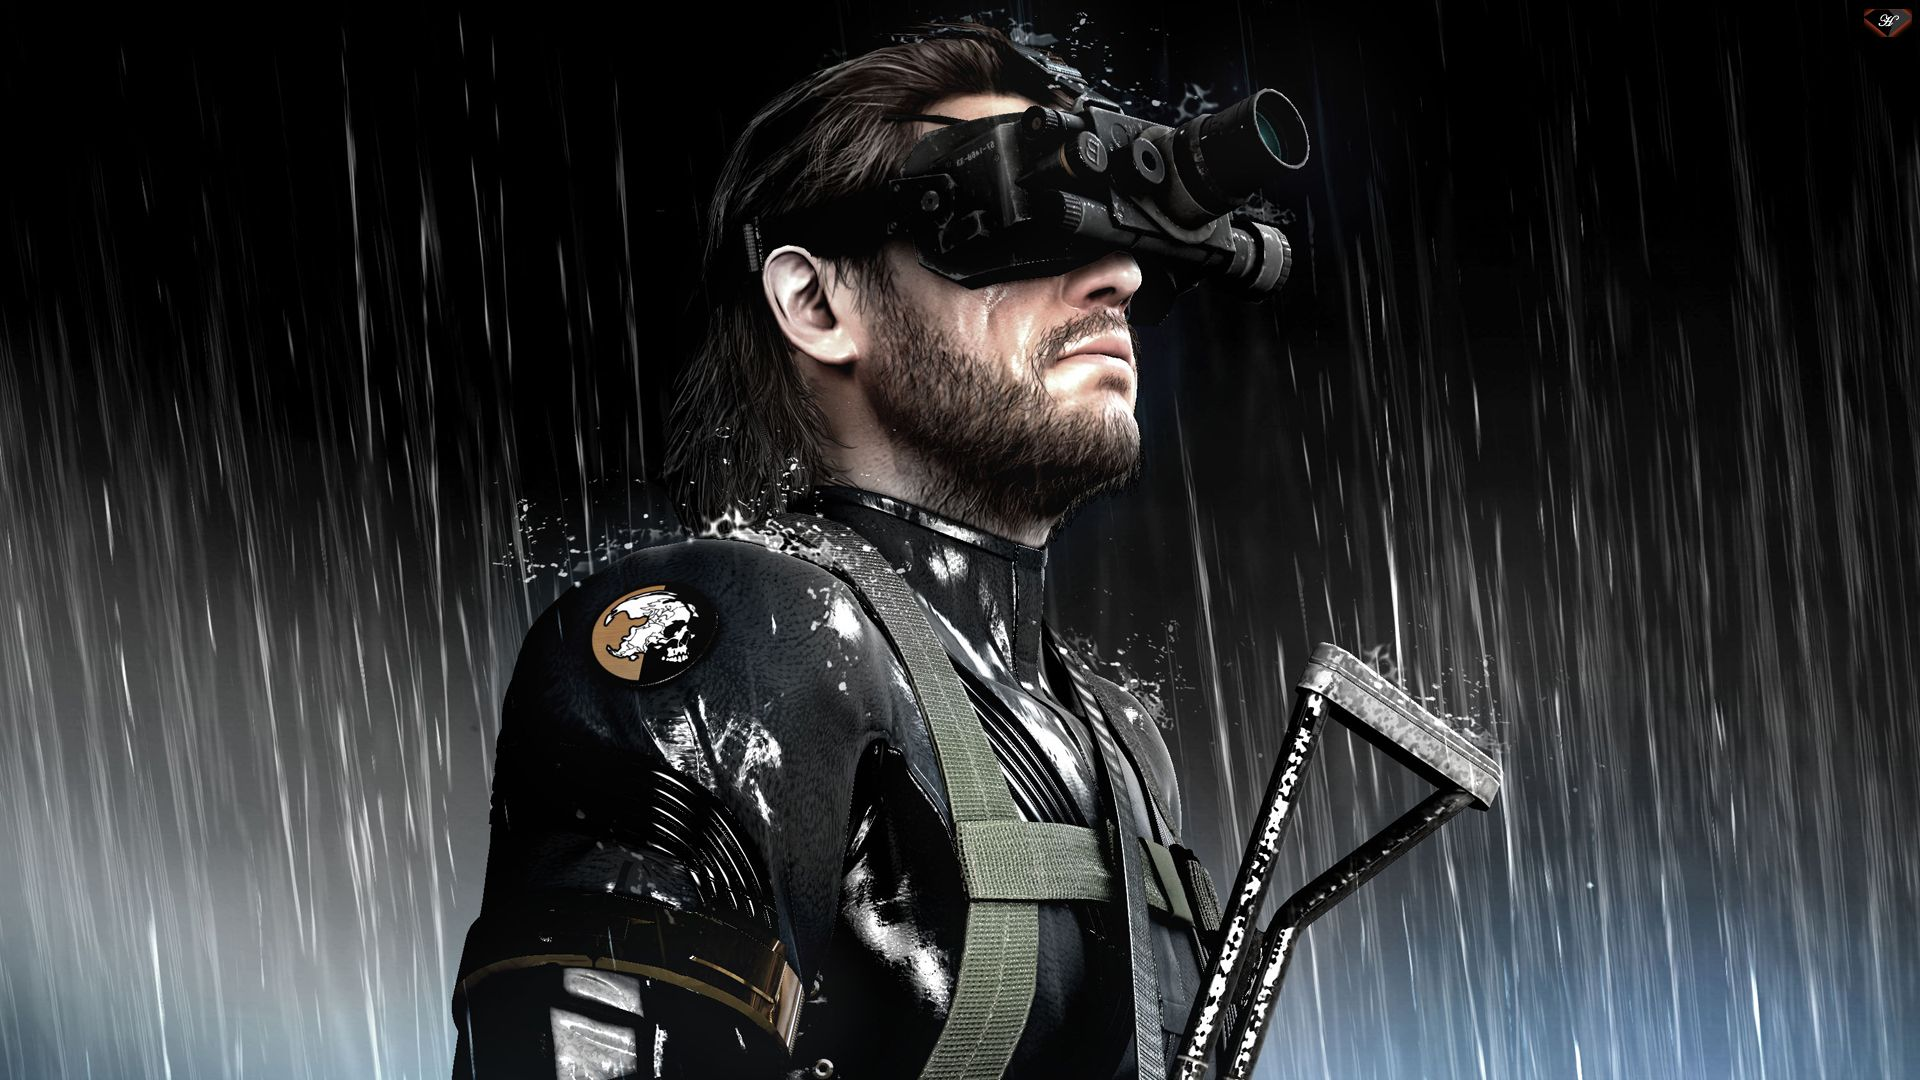 Metal Gear Solid V: The Phantom Pain For mobile